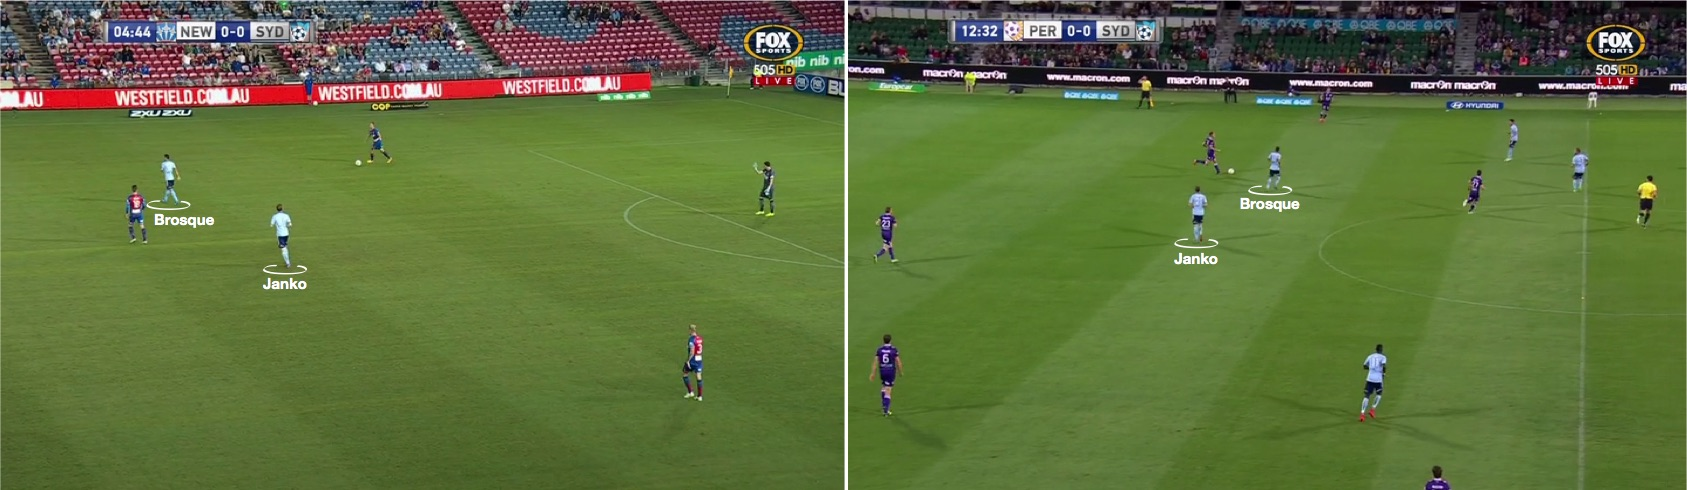 Sydney's front two when defending